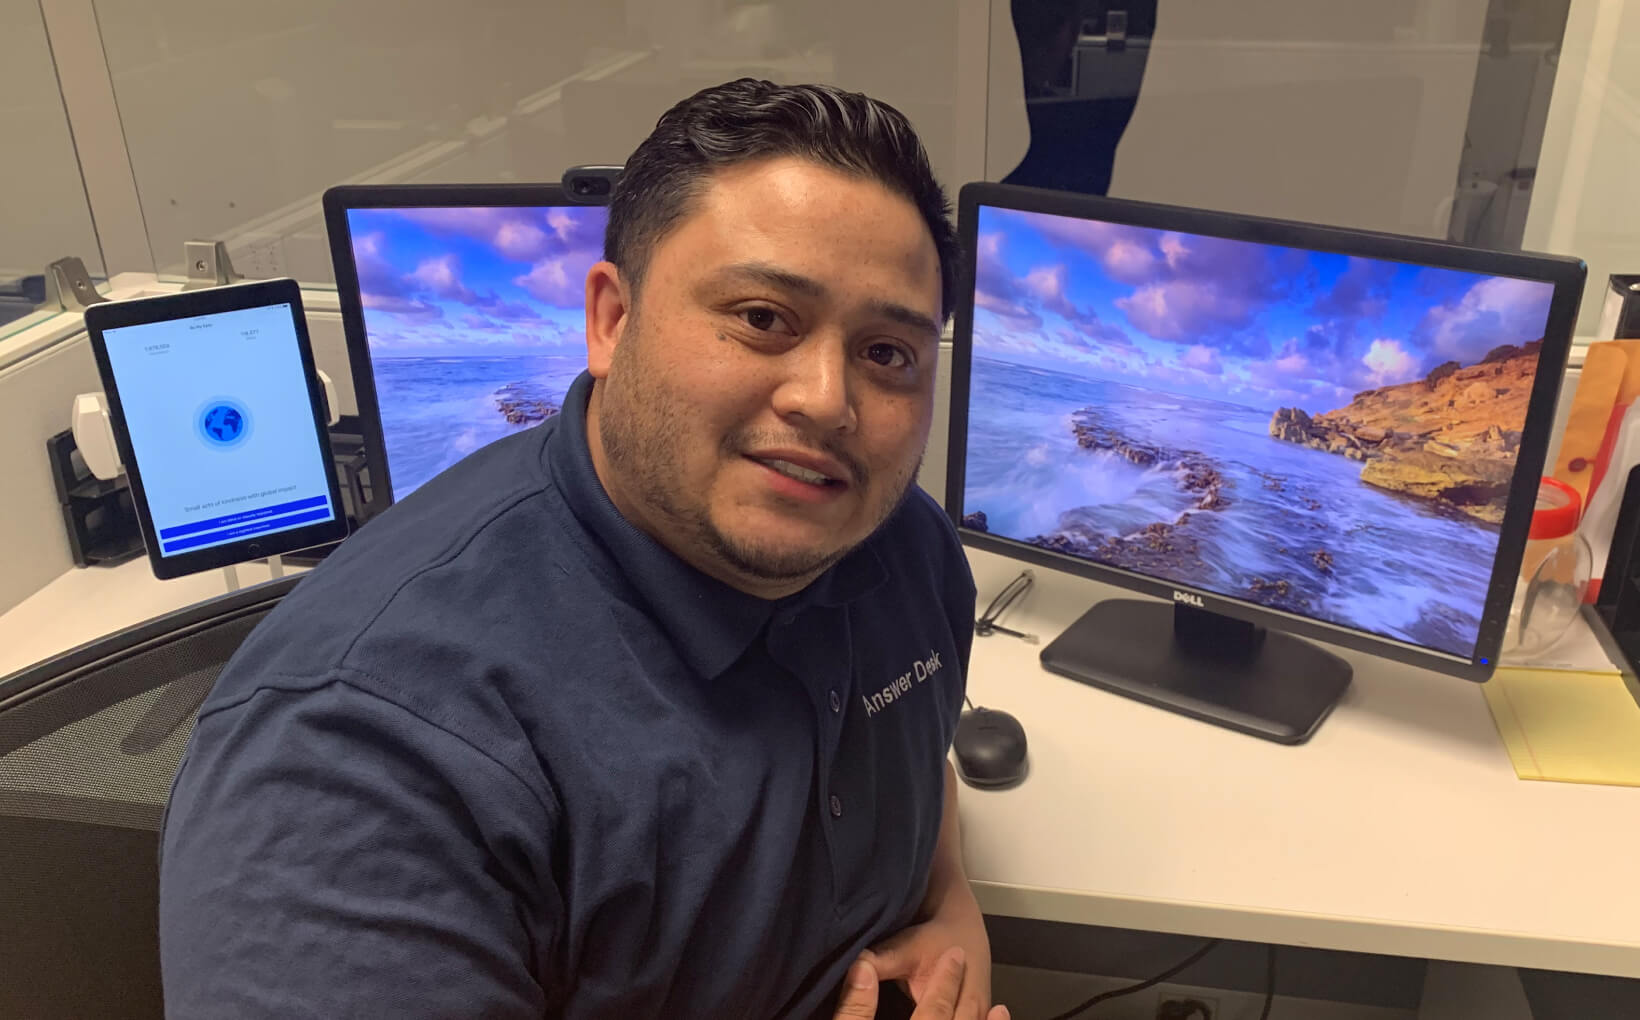 Mike sitting in front of his desk at the Microsoft Disability Answer Desk. He's turned towards the camera, smiling. On his desk is his desktop computer and a tablet with be My Eyes open.